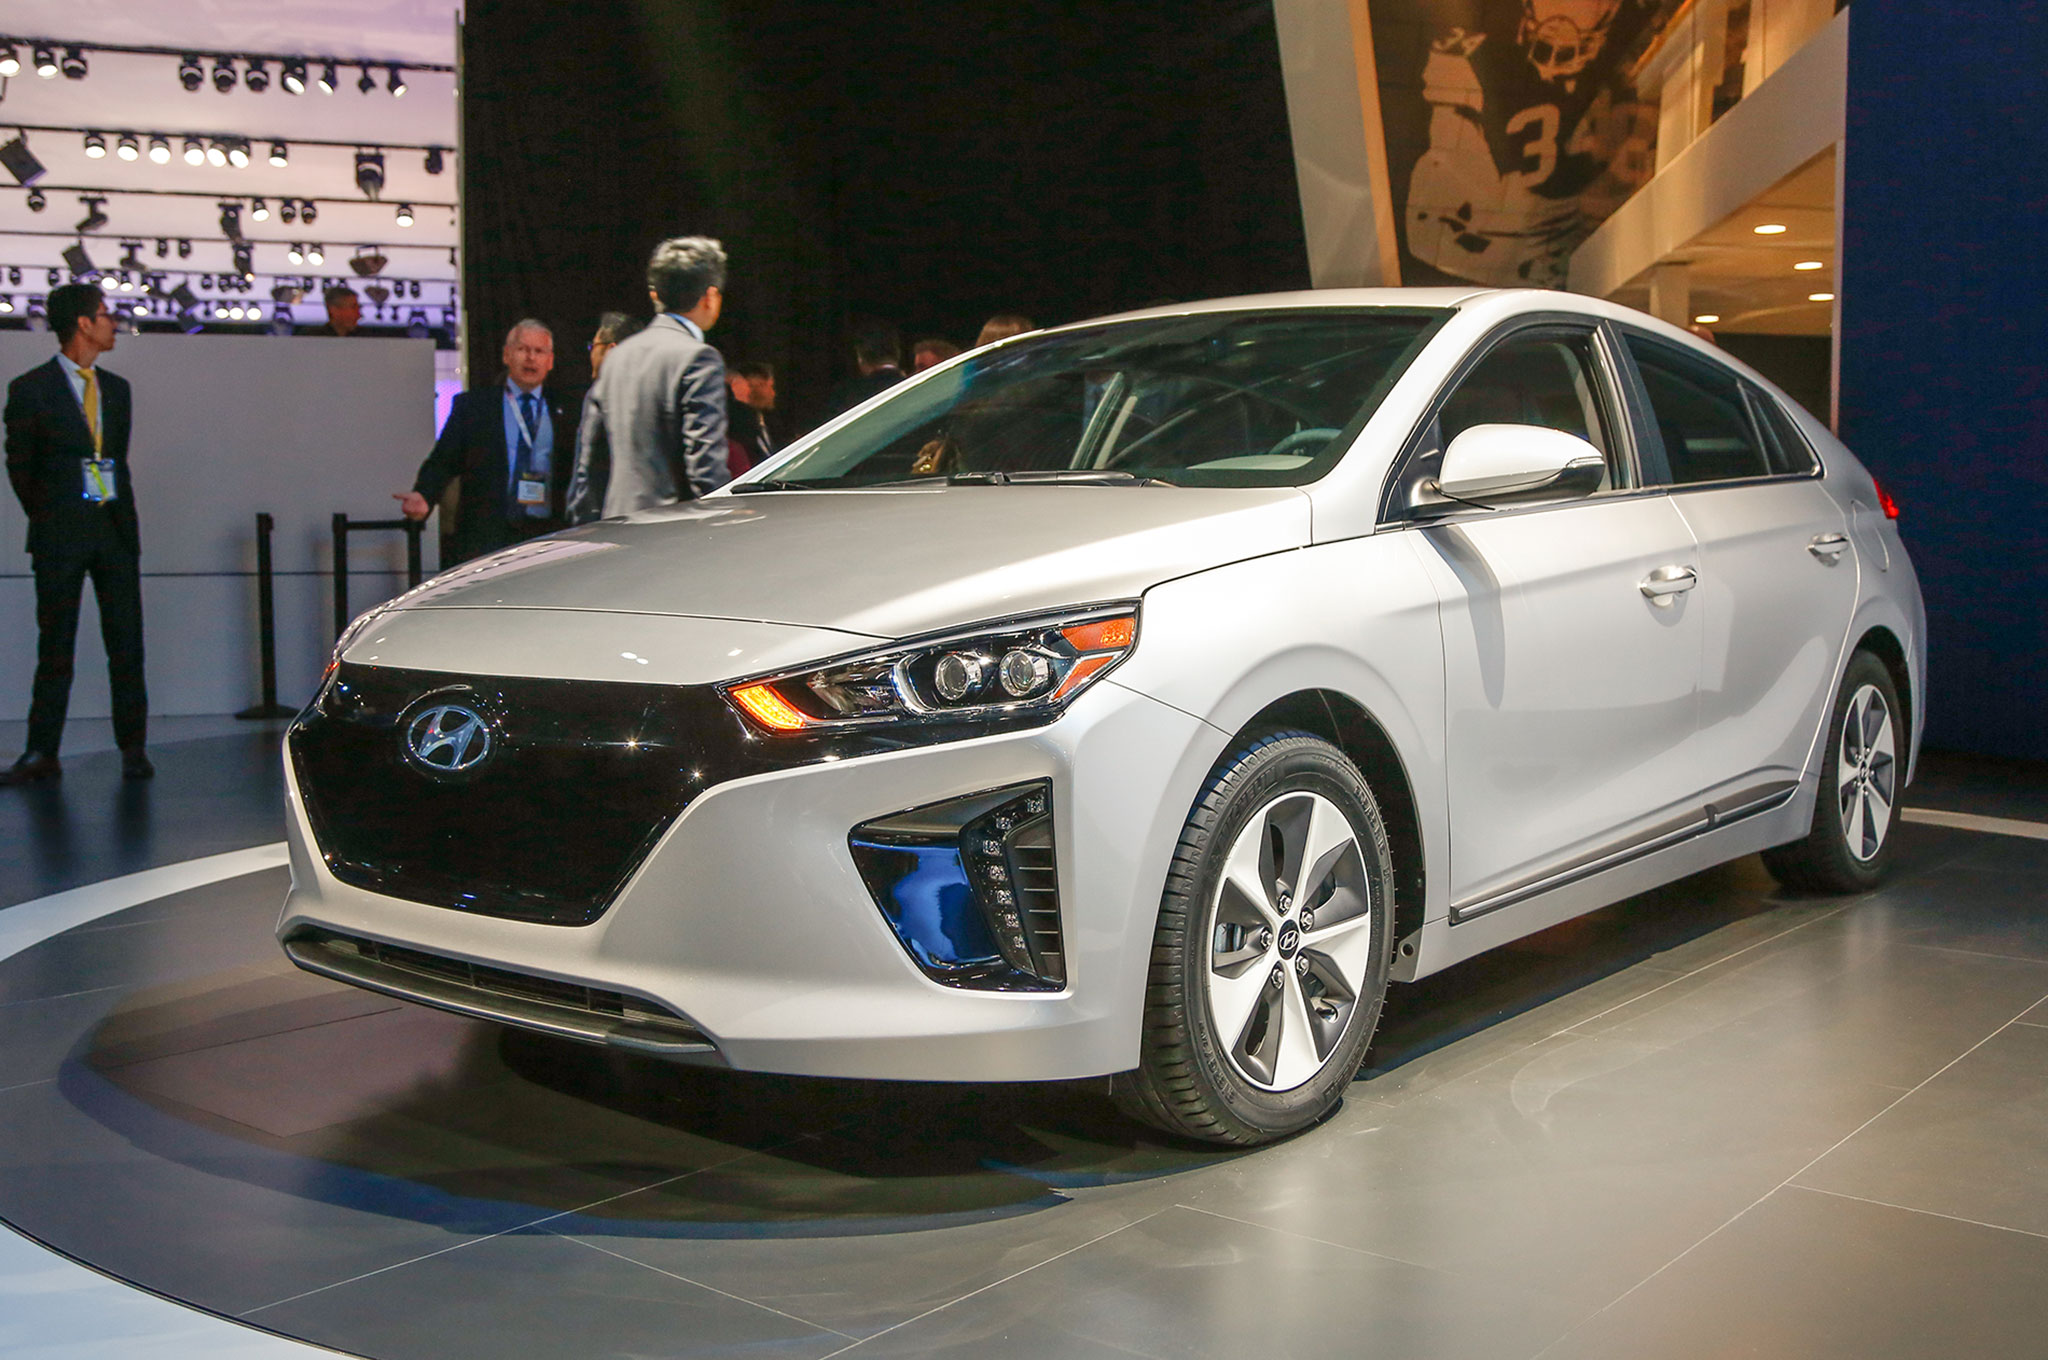 http://st.automobilemag.com/uploads/sites/11/2016/03/2017-Hyundai-Ioniq-Electric-front-three-quarter-01.jpg